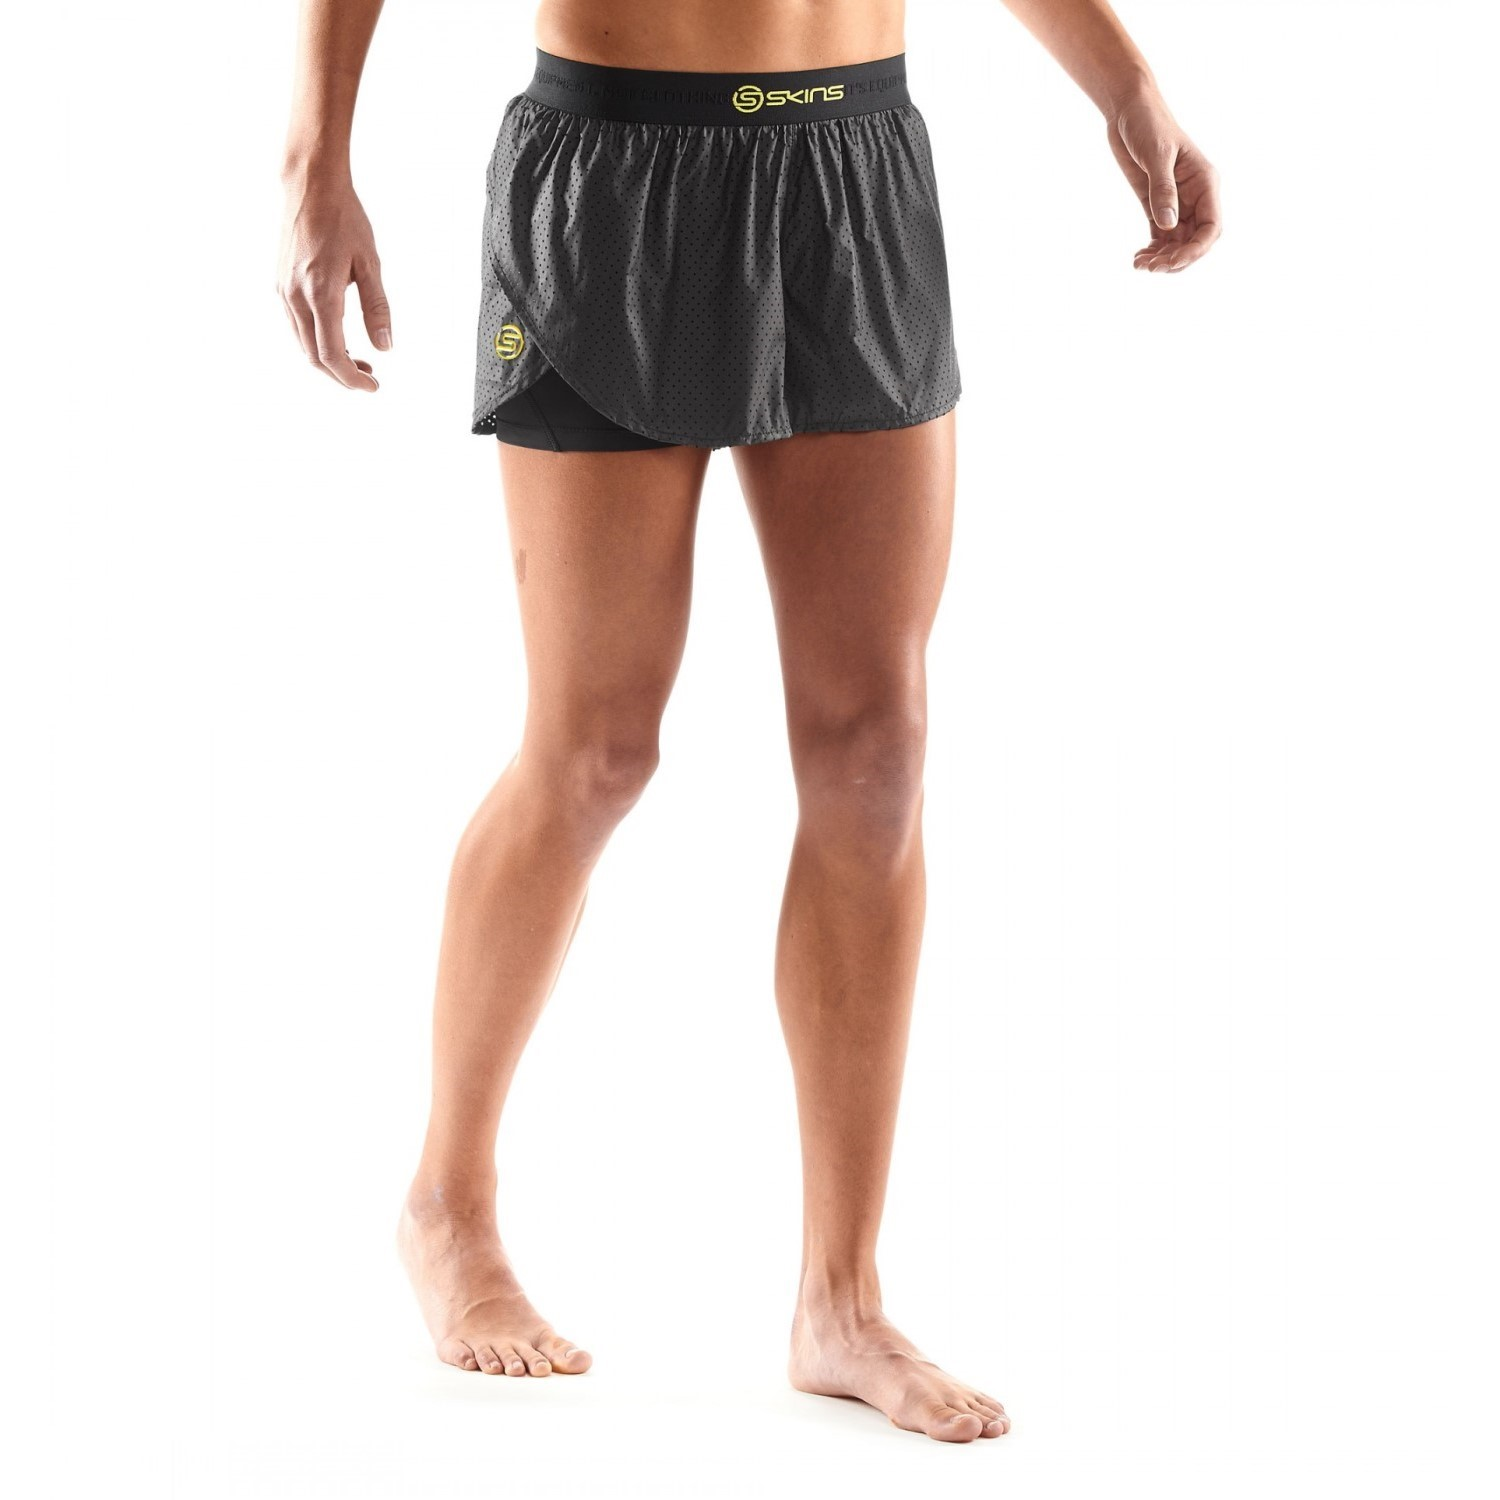 912aaab1b25aa Skins DNAmic Superpose Womens 2-in-1 Compression Shorts - Black/Limoncello